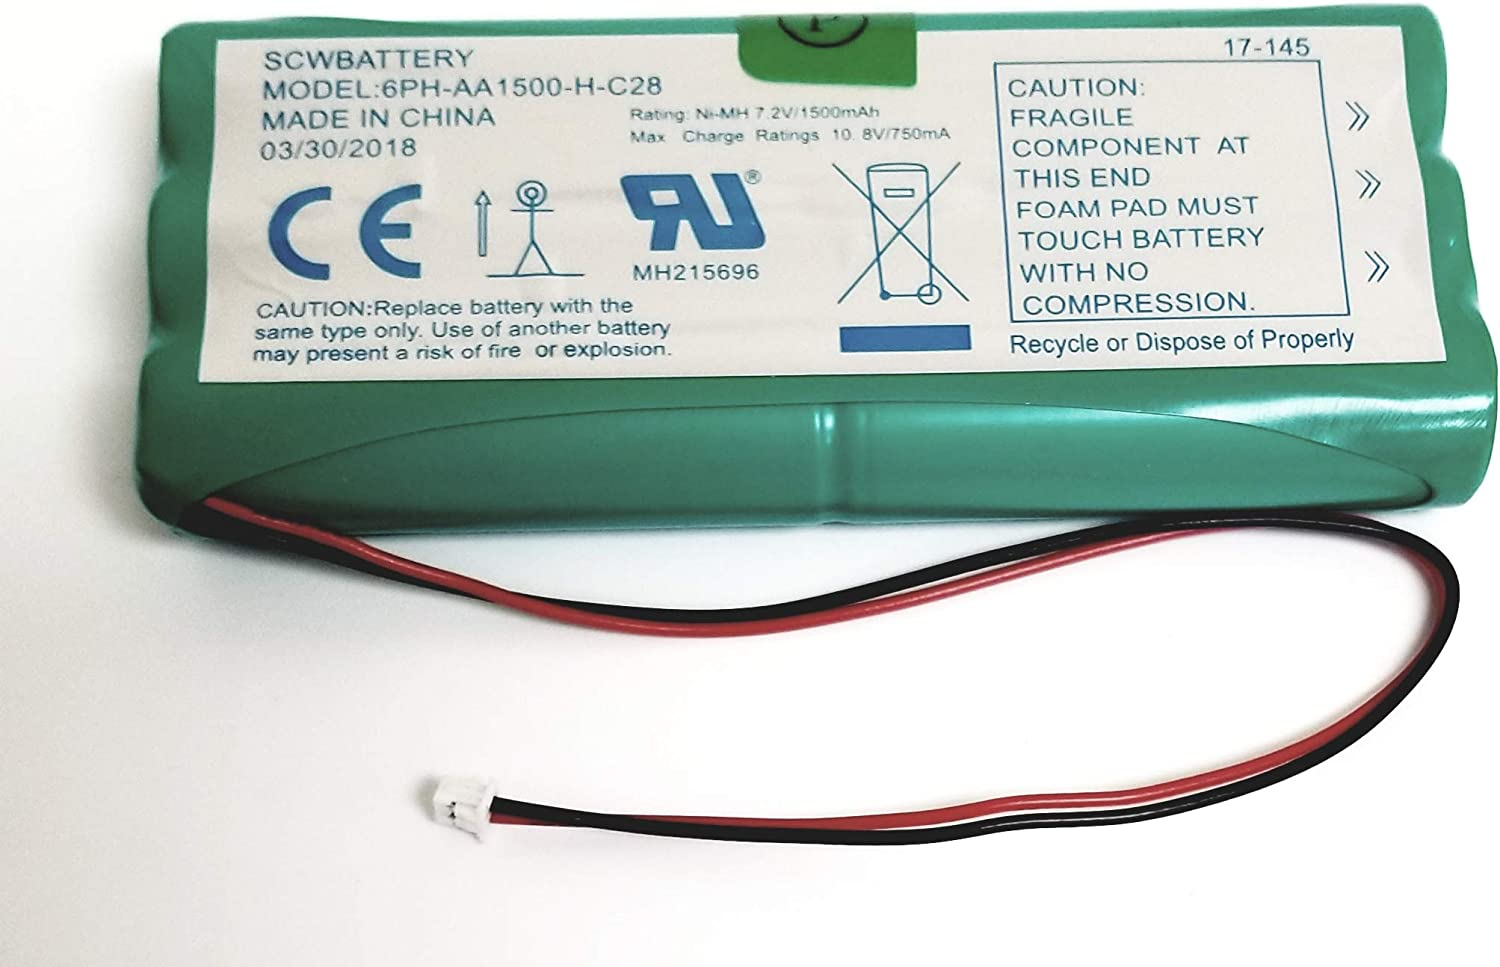 DIGITAL SECURITY CONTROLS DSC SCWBATTERY REPLACEMENT BATTERY FOR POWERSERIES 9047 SELF CONTAIN by DSC